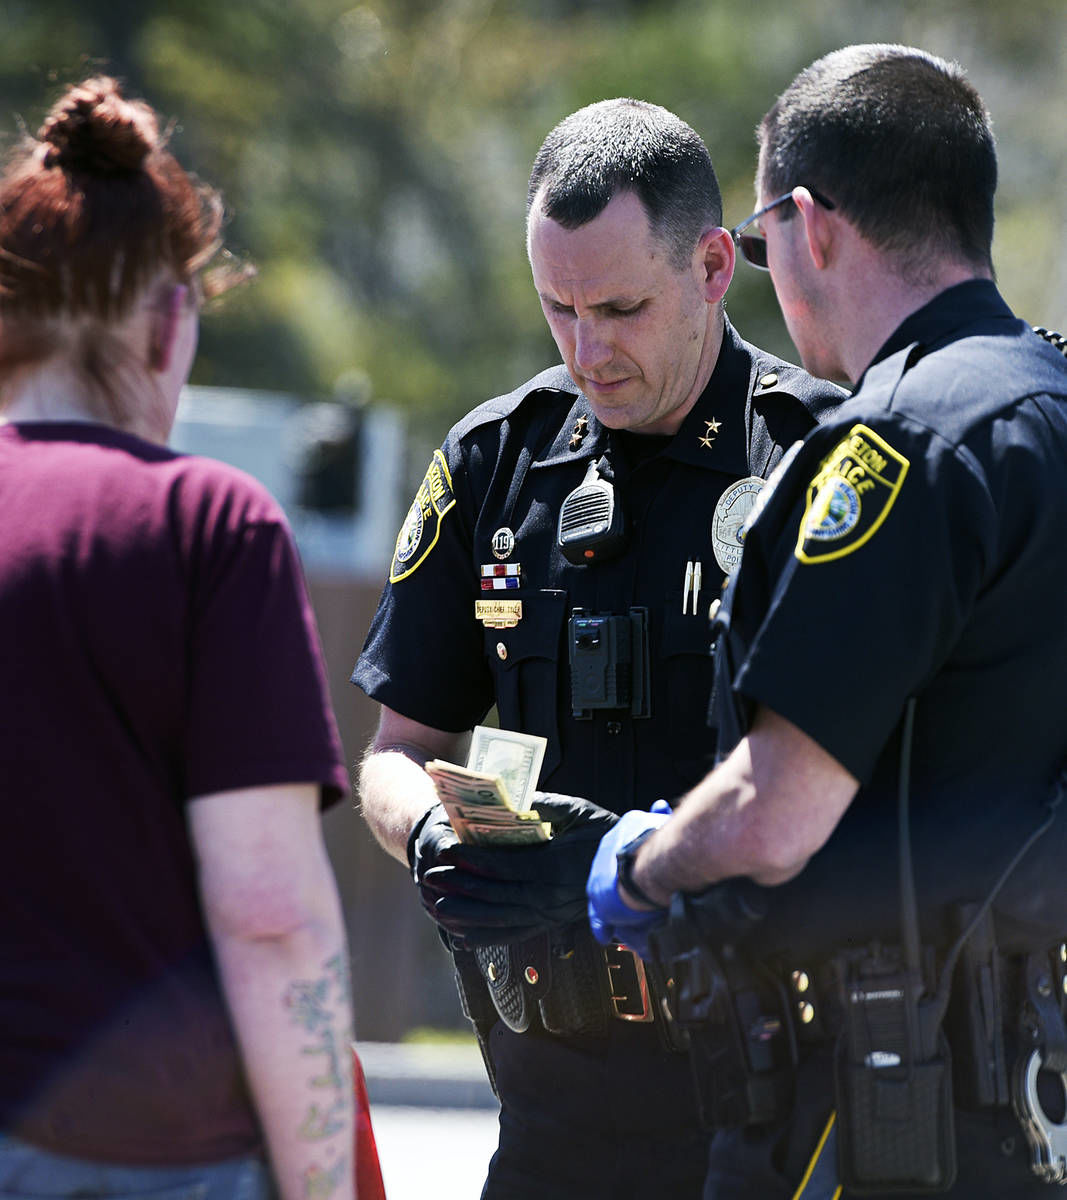 Local Police Chiefs Discuss Policy Review, Morale During Nationwide Protests